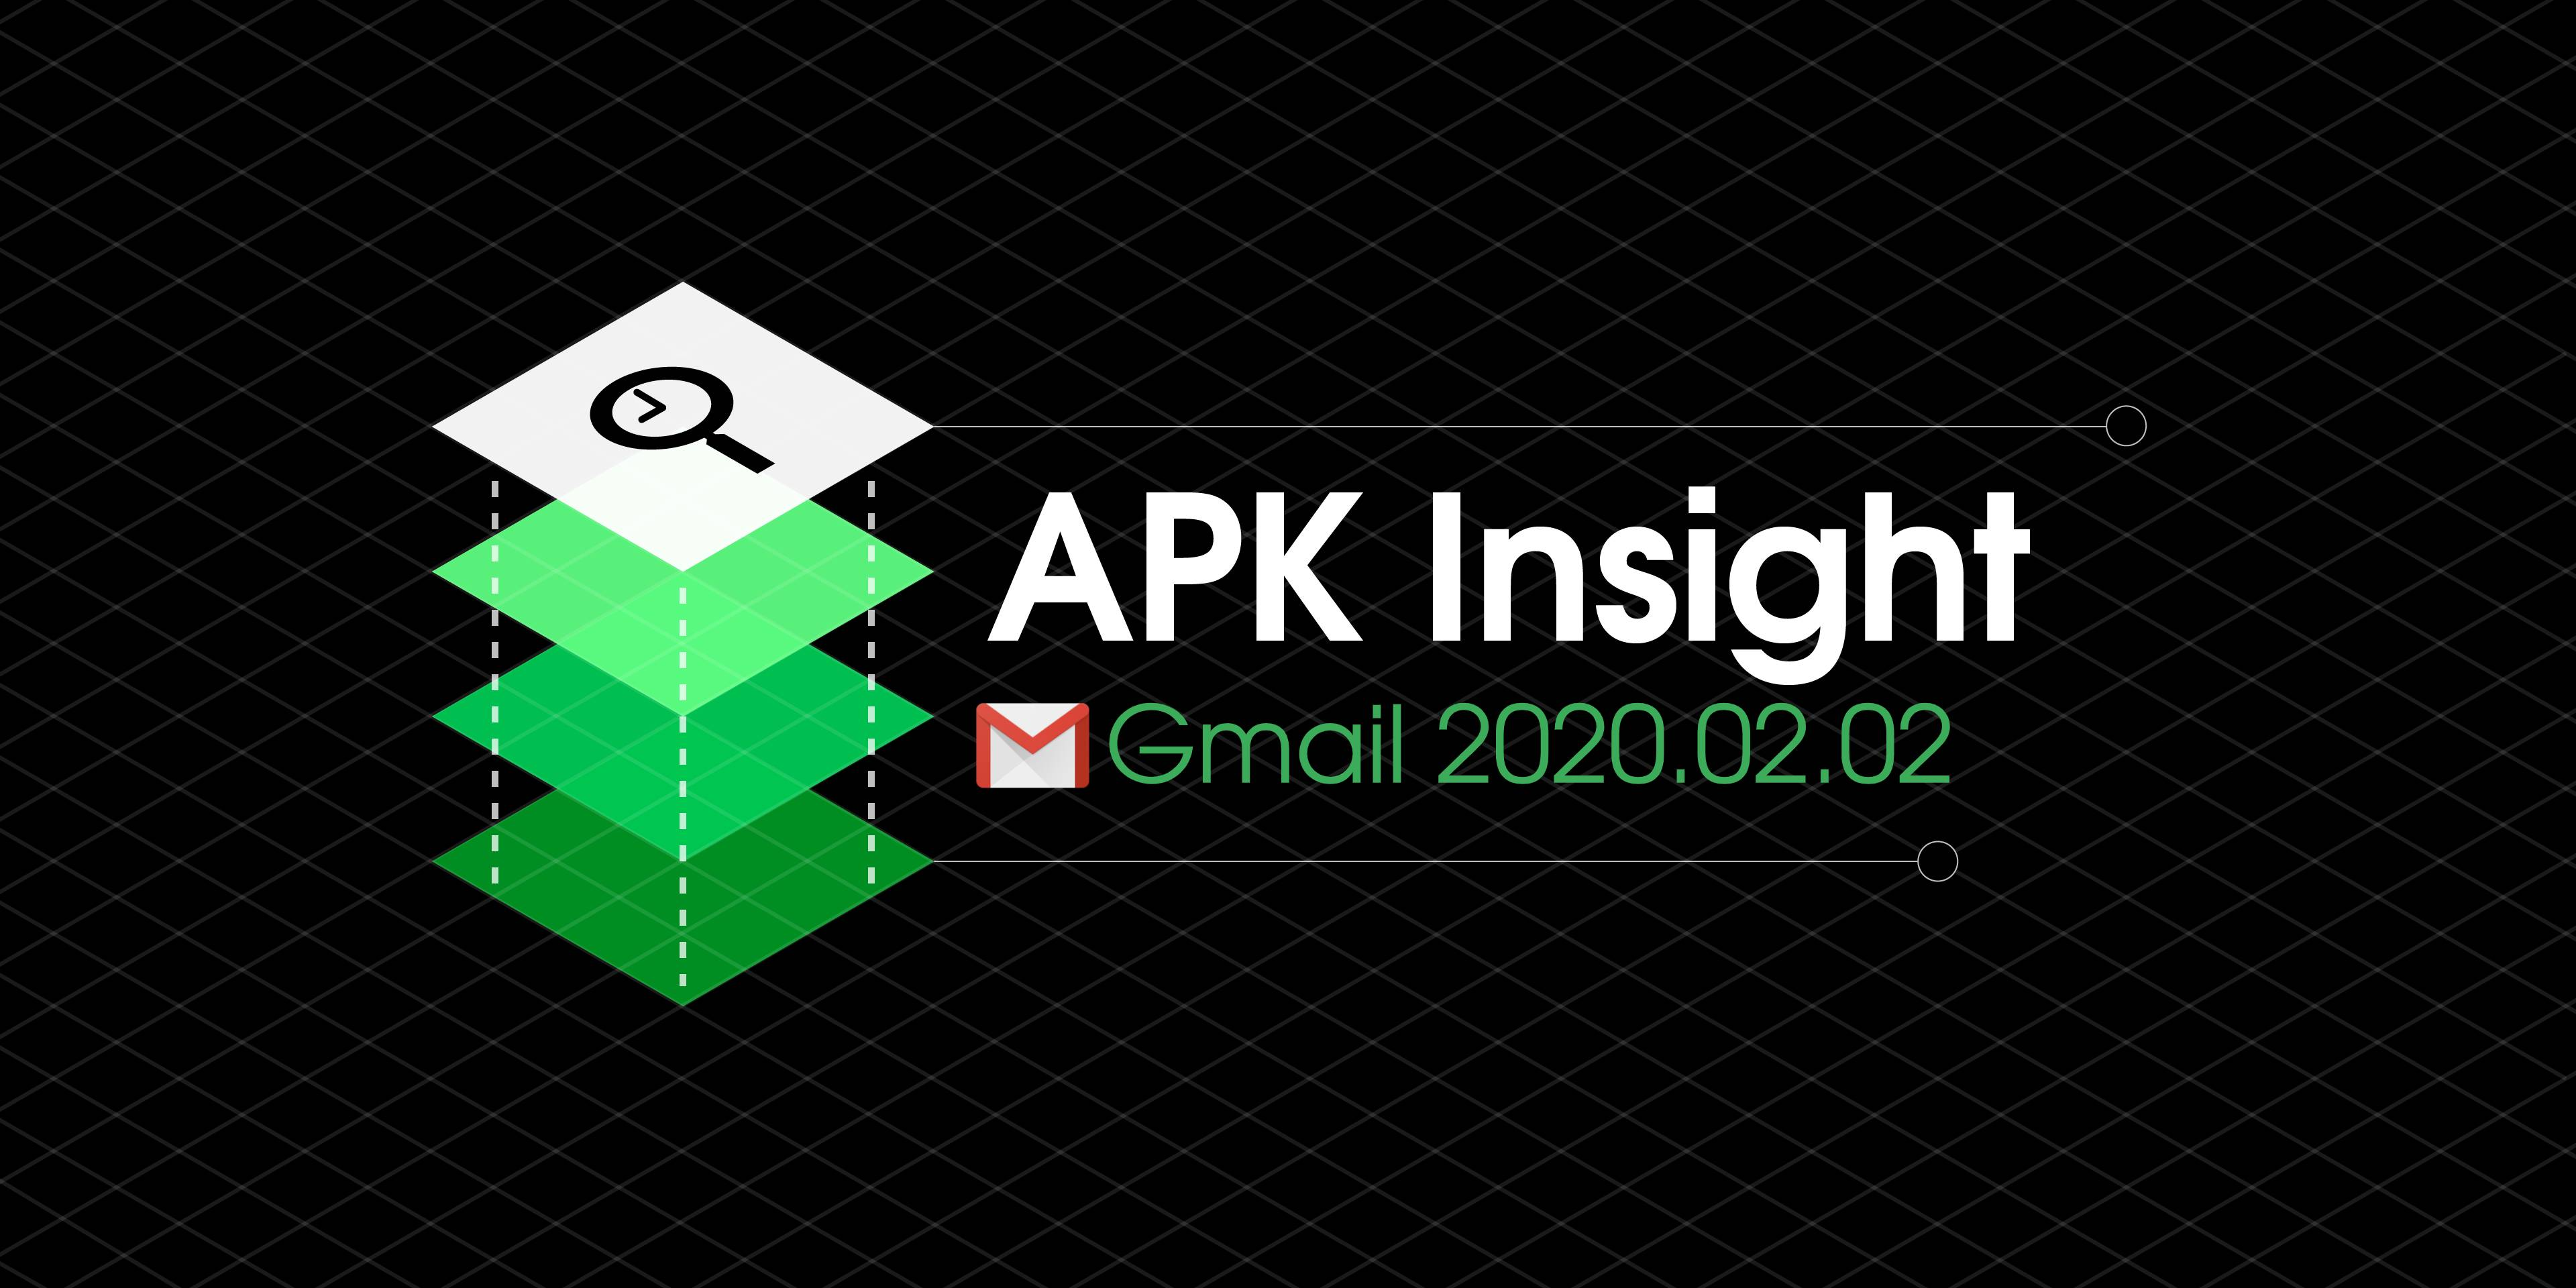 Gmail 2020.02.02 hints at Inbox-like 'Bundles' with 'Labels' and 'Smartmail card' [APK Insight]